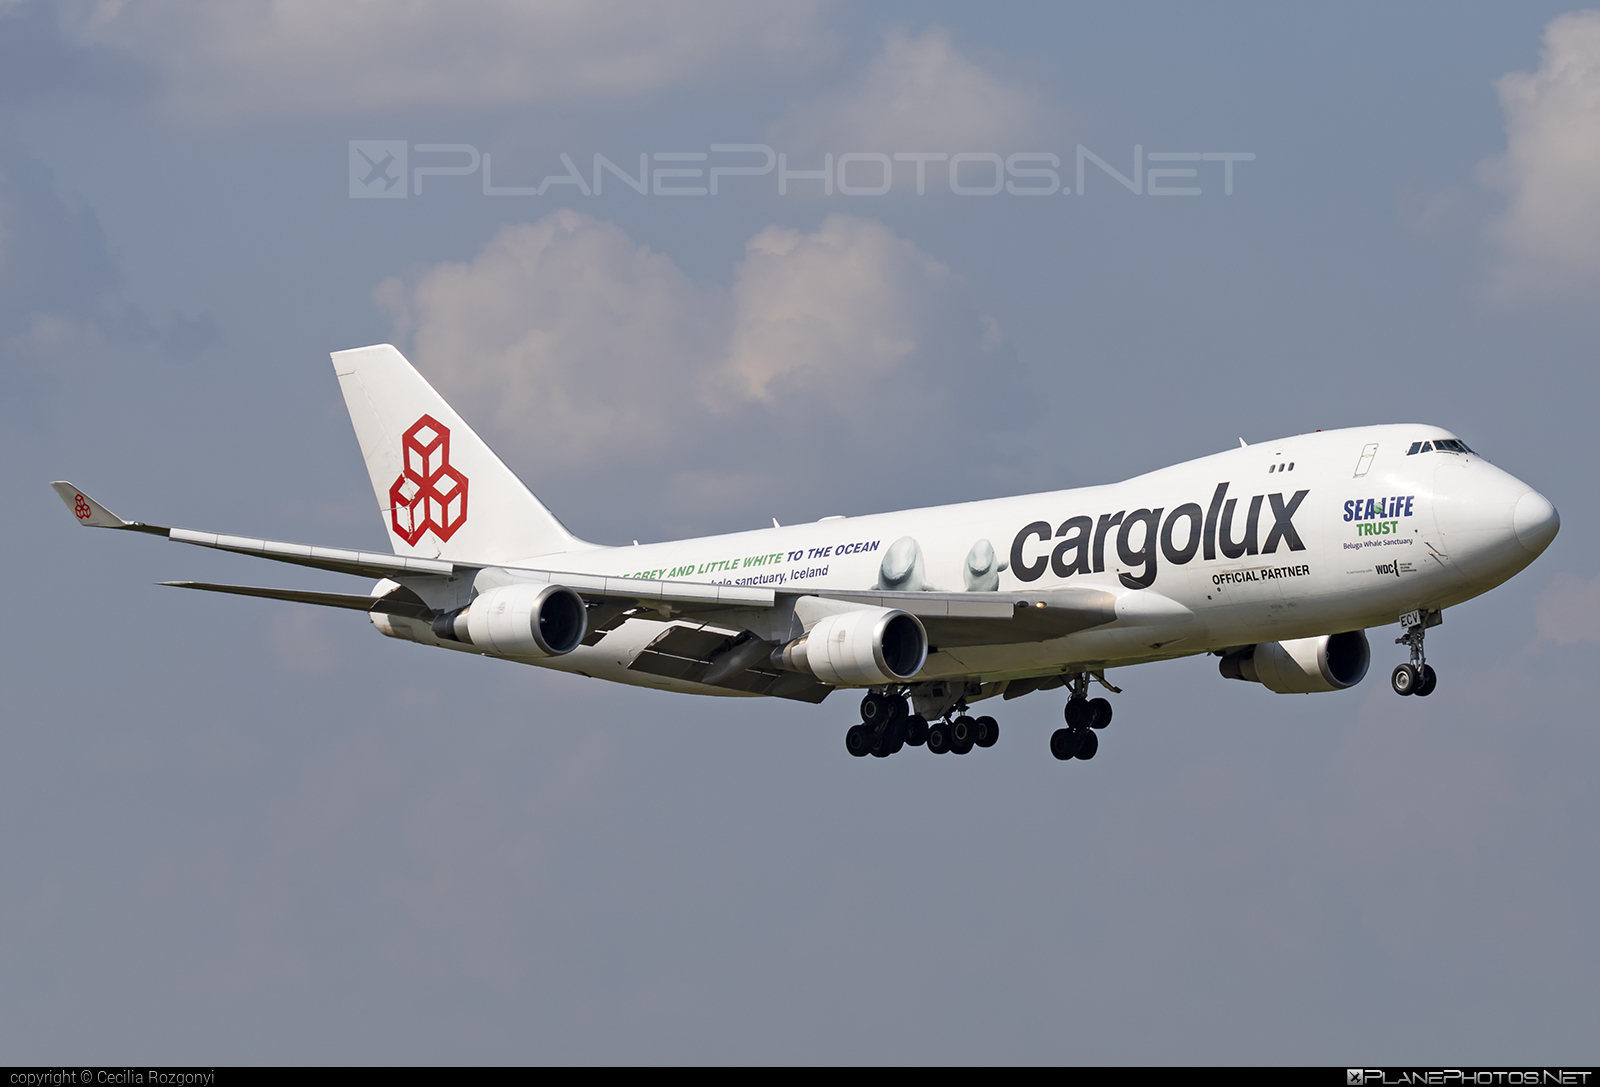 Boeing 747-400ER - LX-ECV operated by Cargolux Airlines International #b747 #boeing #boeing747 #cargolux #jumbo